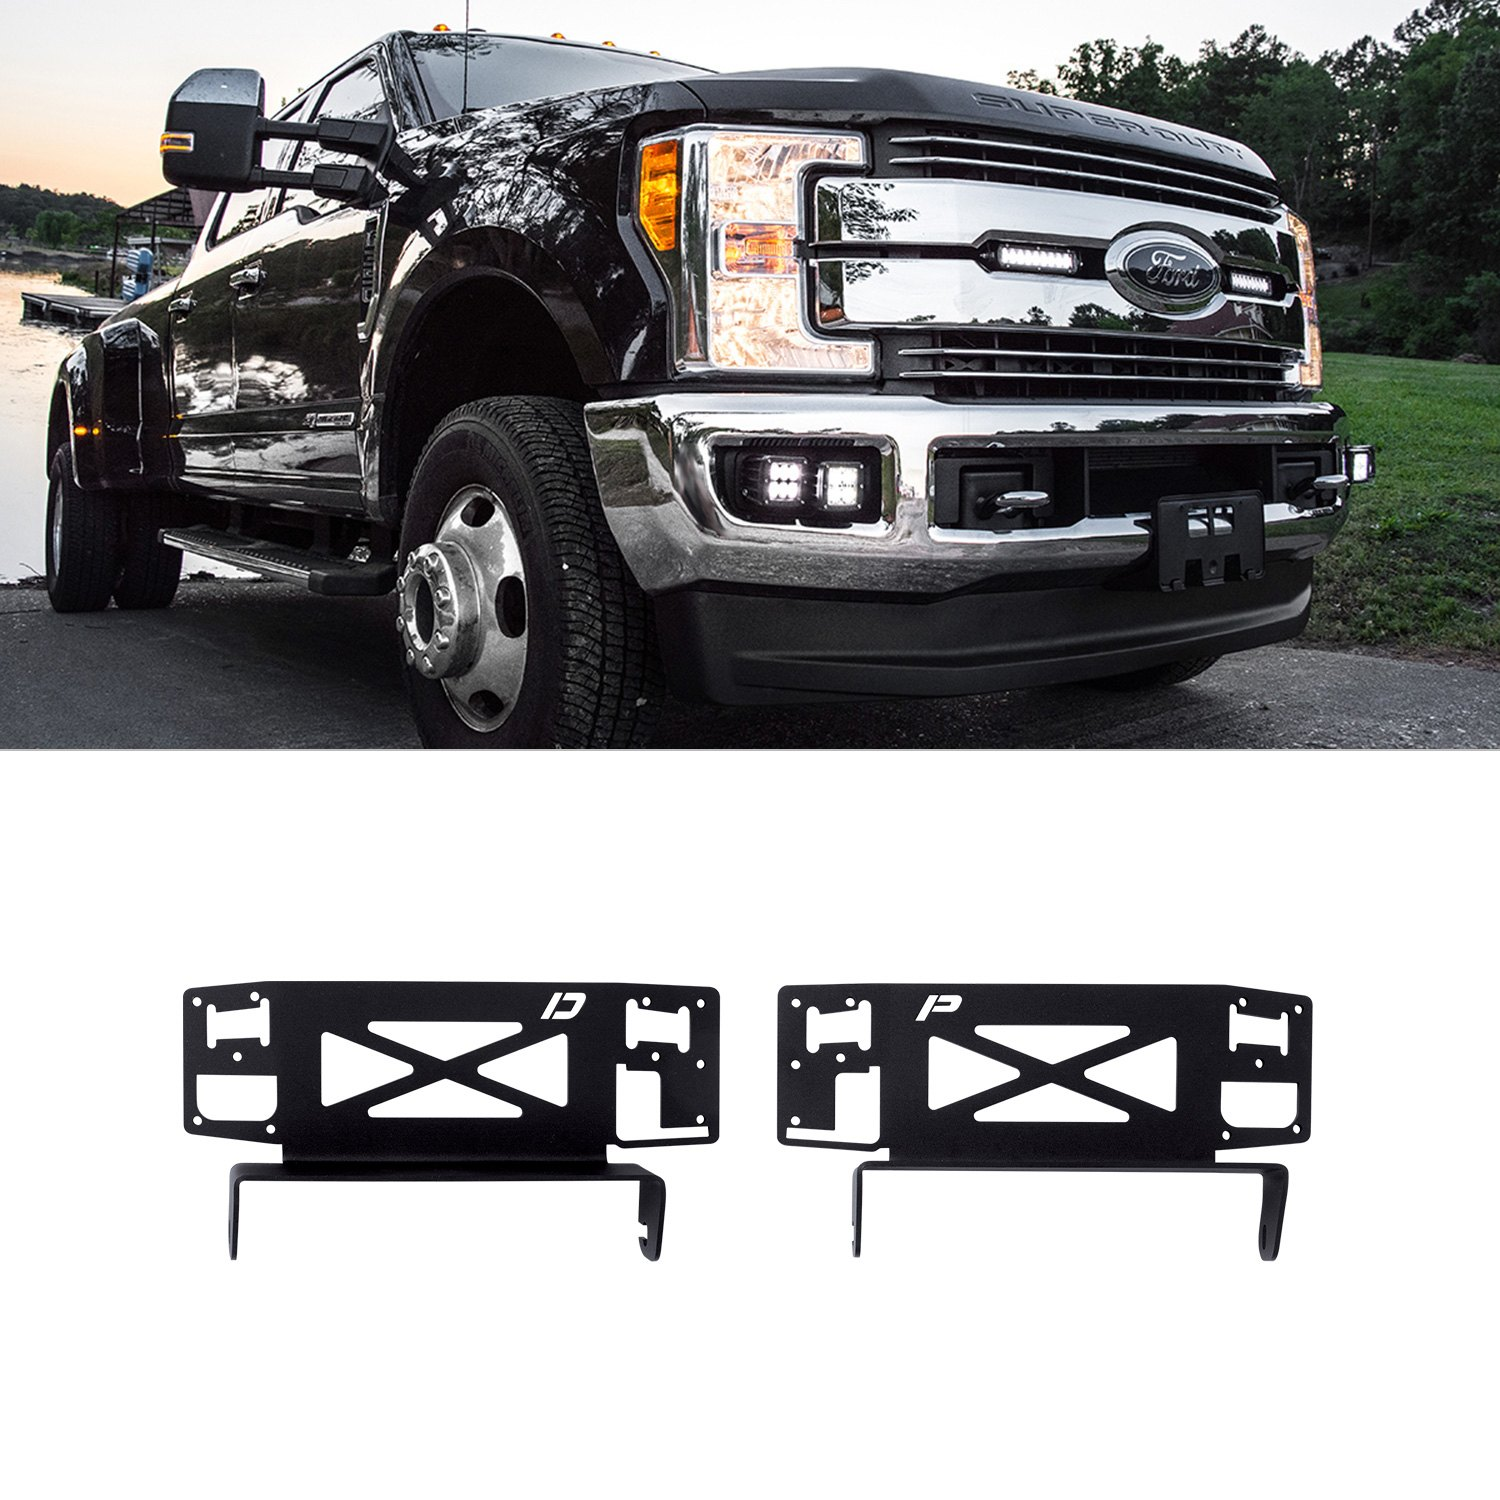 Rigid Industries 41619 Grille Mounts For 2x6 Sr Series Led Light Bars